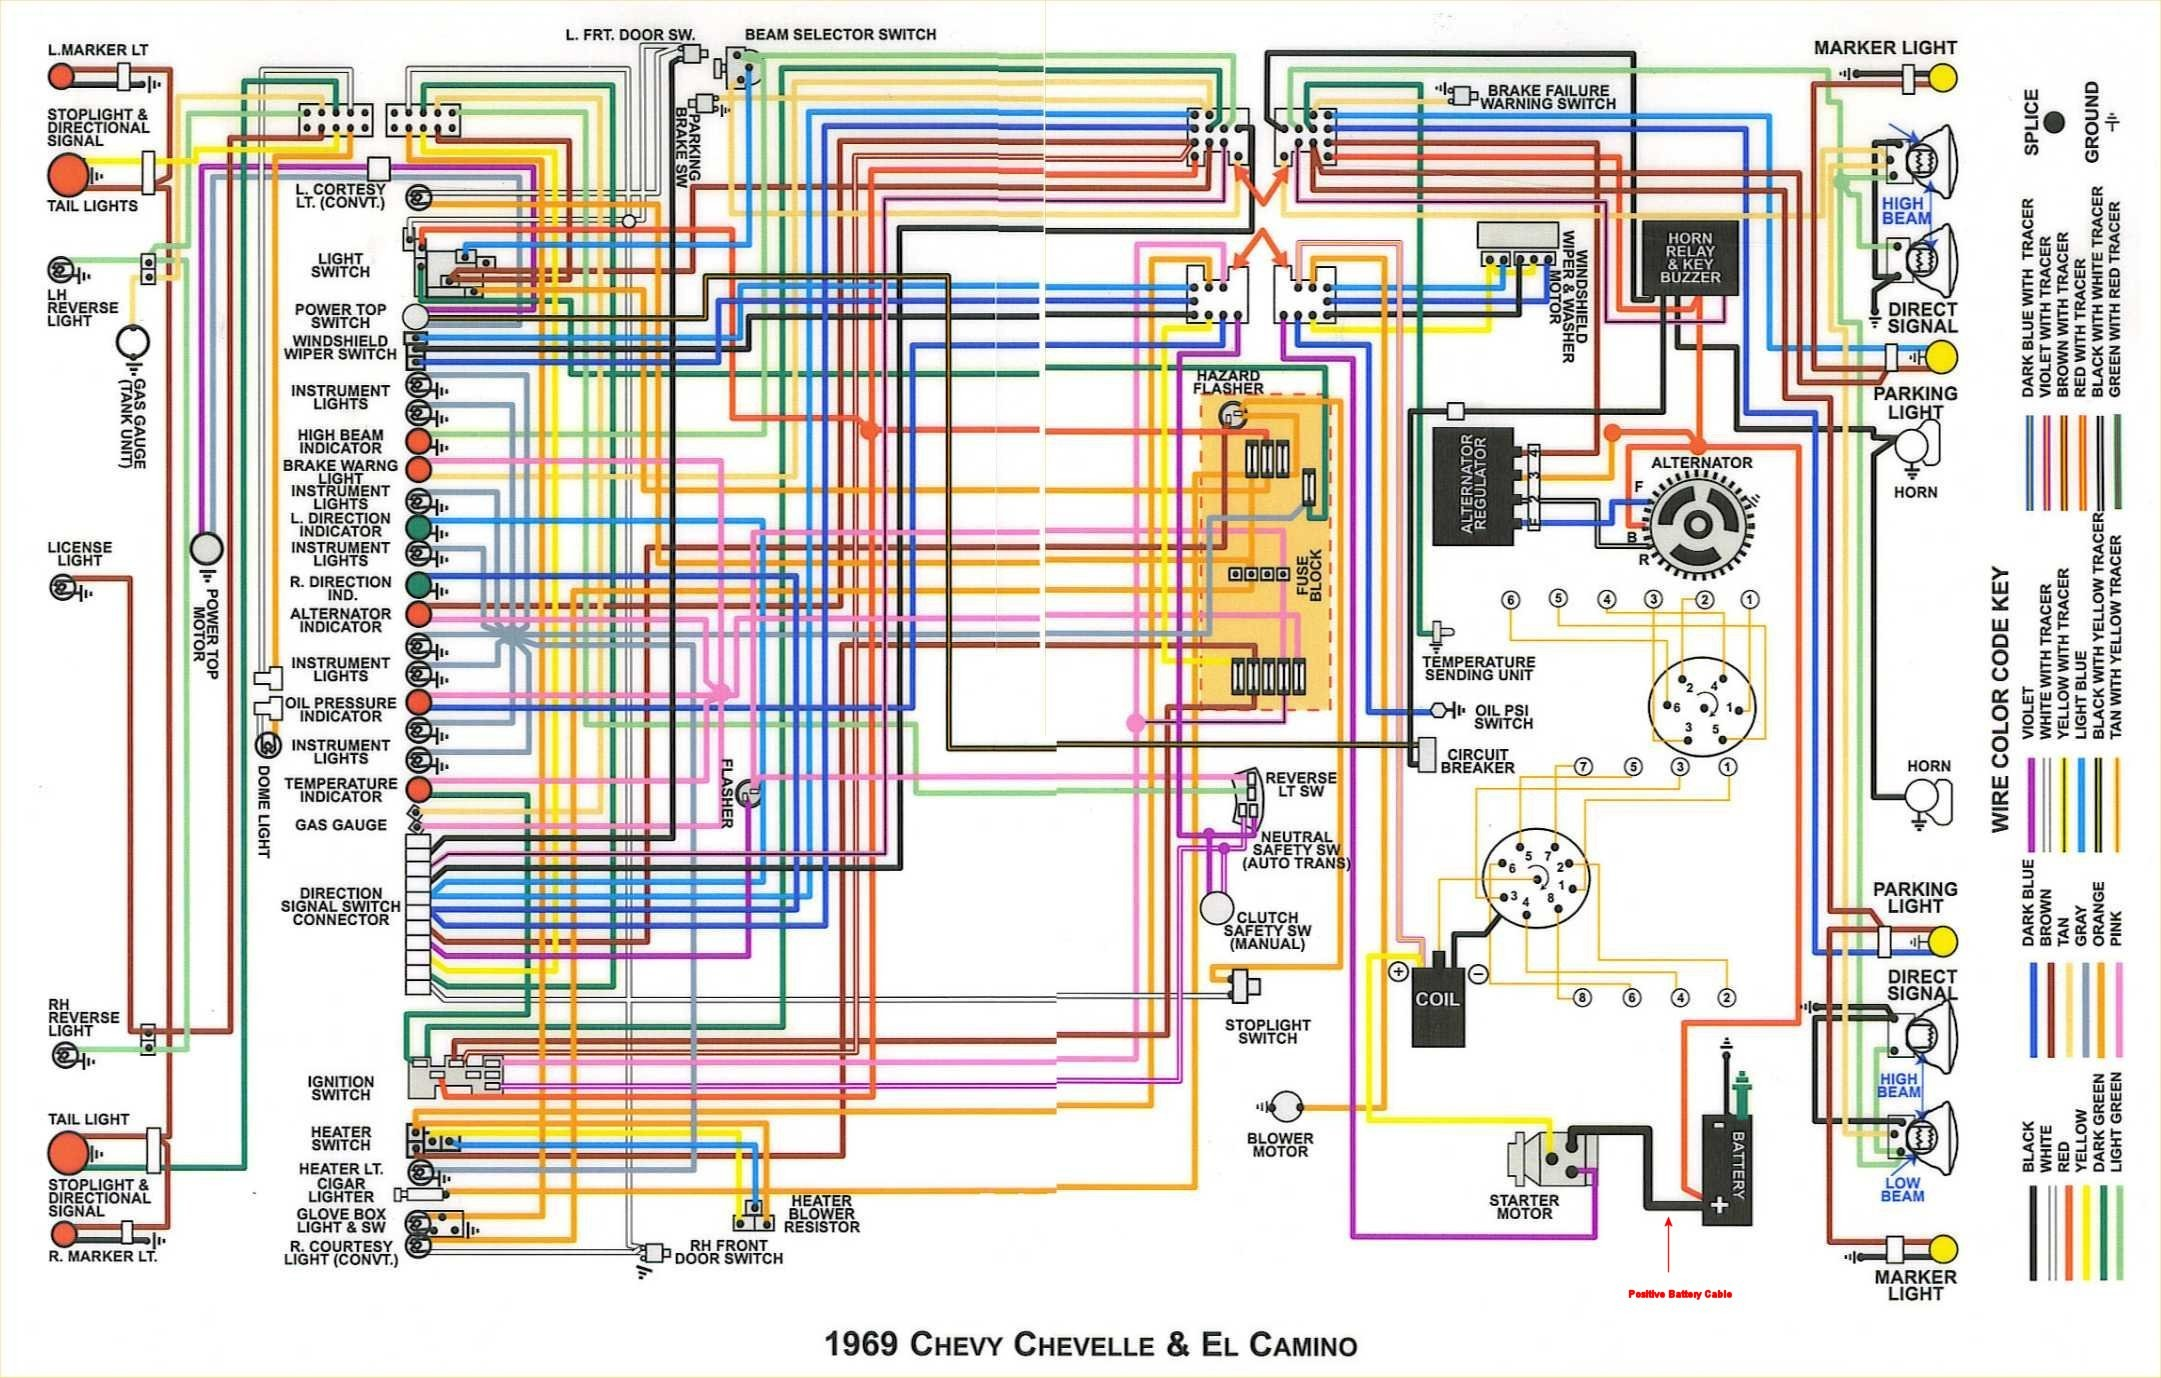 68 C10 Wiring Diagram - Clipsal Wiring Diagram for Wiring Diagram SchematicsWiring Diagram Schematics